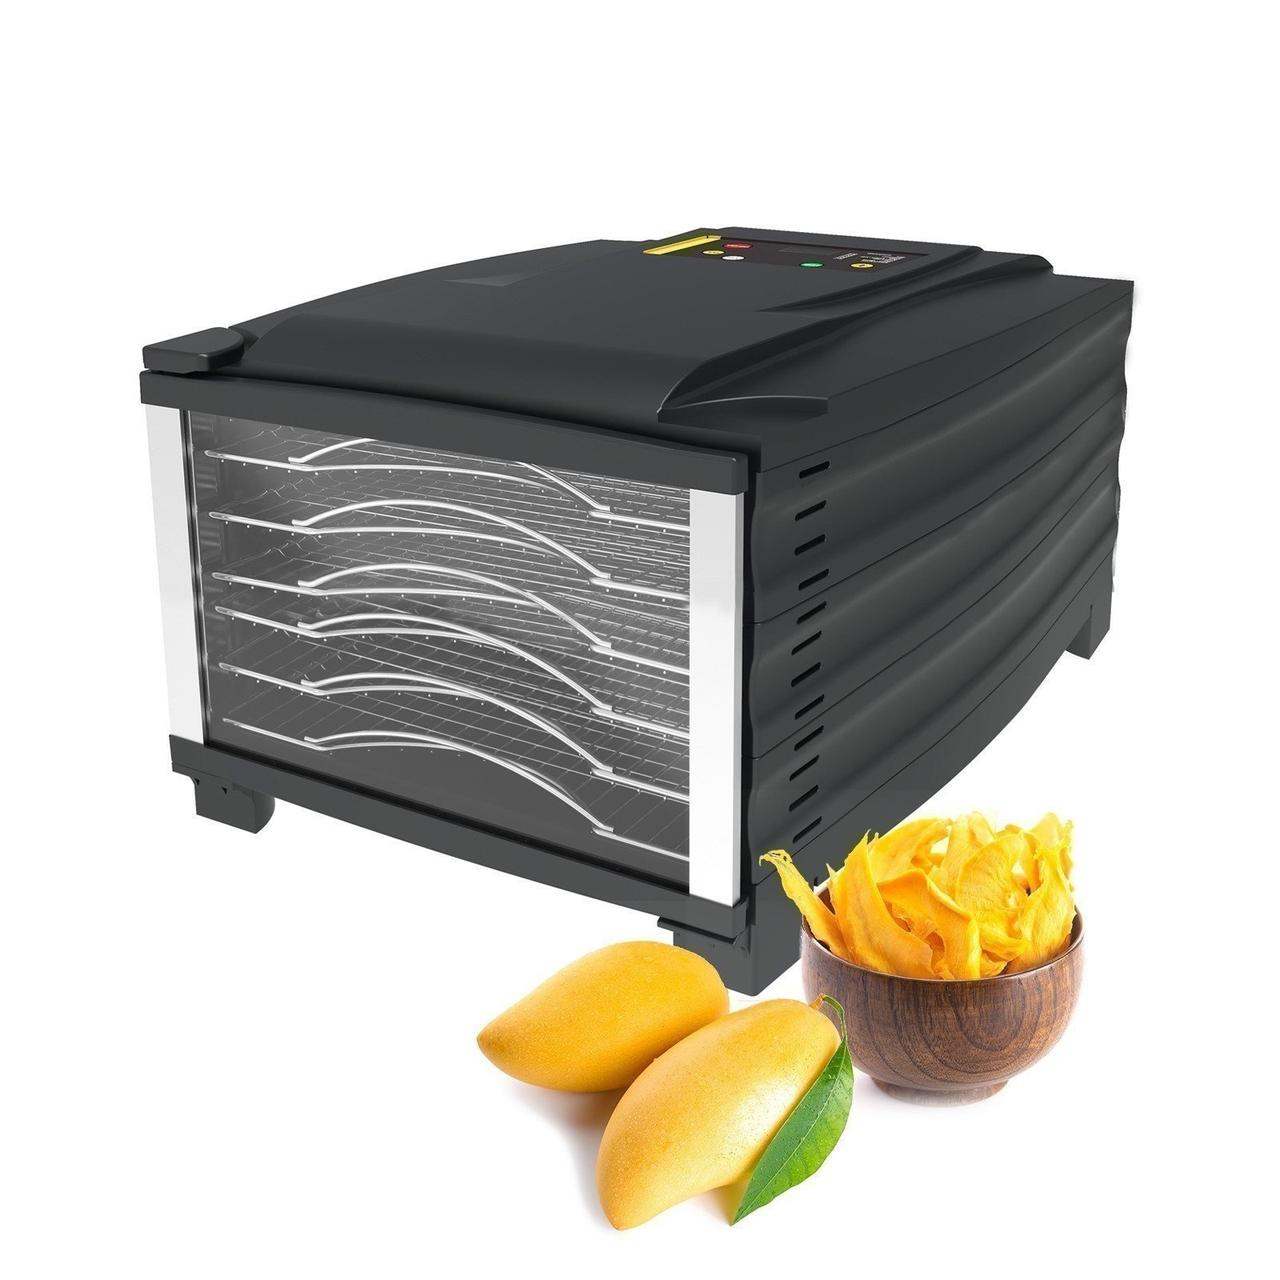 Дегидратор BioChef Arizona 6 Tray Food Dehydrator, фото 1